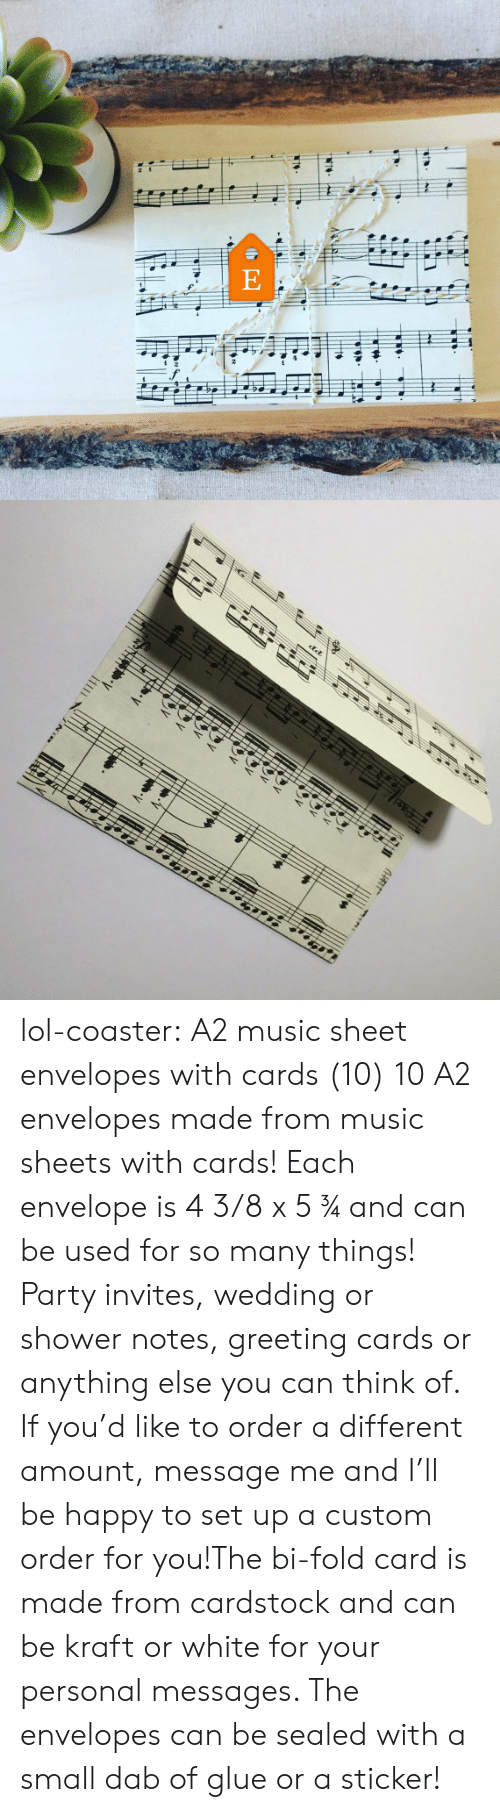 greeting cards: lol-coaster:   A2 music sheet envelopes with cards (10)    10 A2 envelopes made from music sheets with cards! Each envelope is 4 3/8 x 5 ¾ and can be used for so many things! Party invites, wedding or shower notes, greeting cards or anything else you can think of. If you'd like to order a different amount, message me and I'll be happy to set up a custom order for you!The bi-fold card is made from cardstock and can be kraft or white for your personal messages. The envelopes can be sealed with a small dab of glue or a sticker!